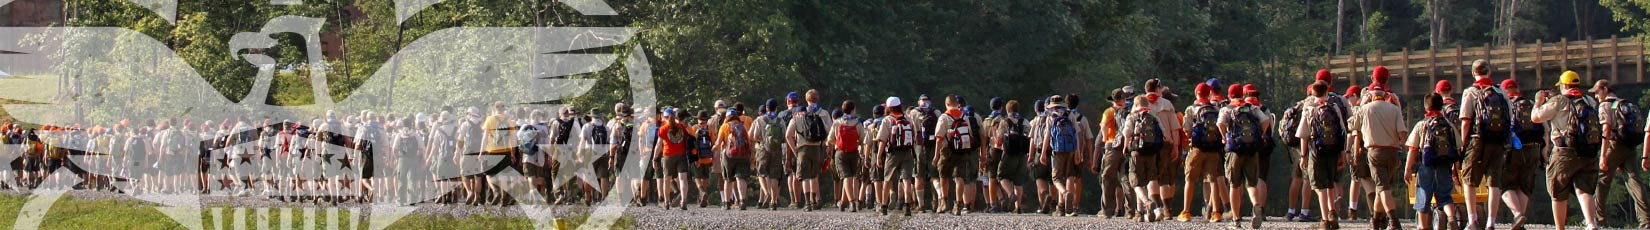 Boy Scouts of Americal Ozark Trails Council banner image